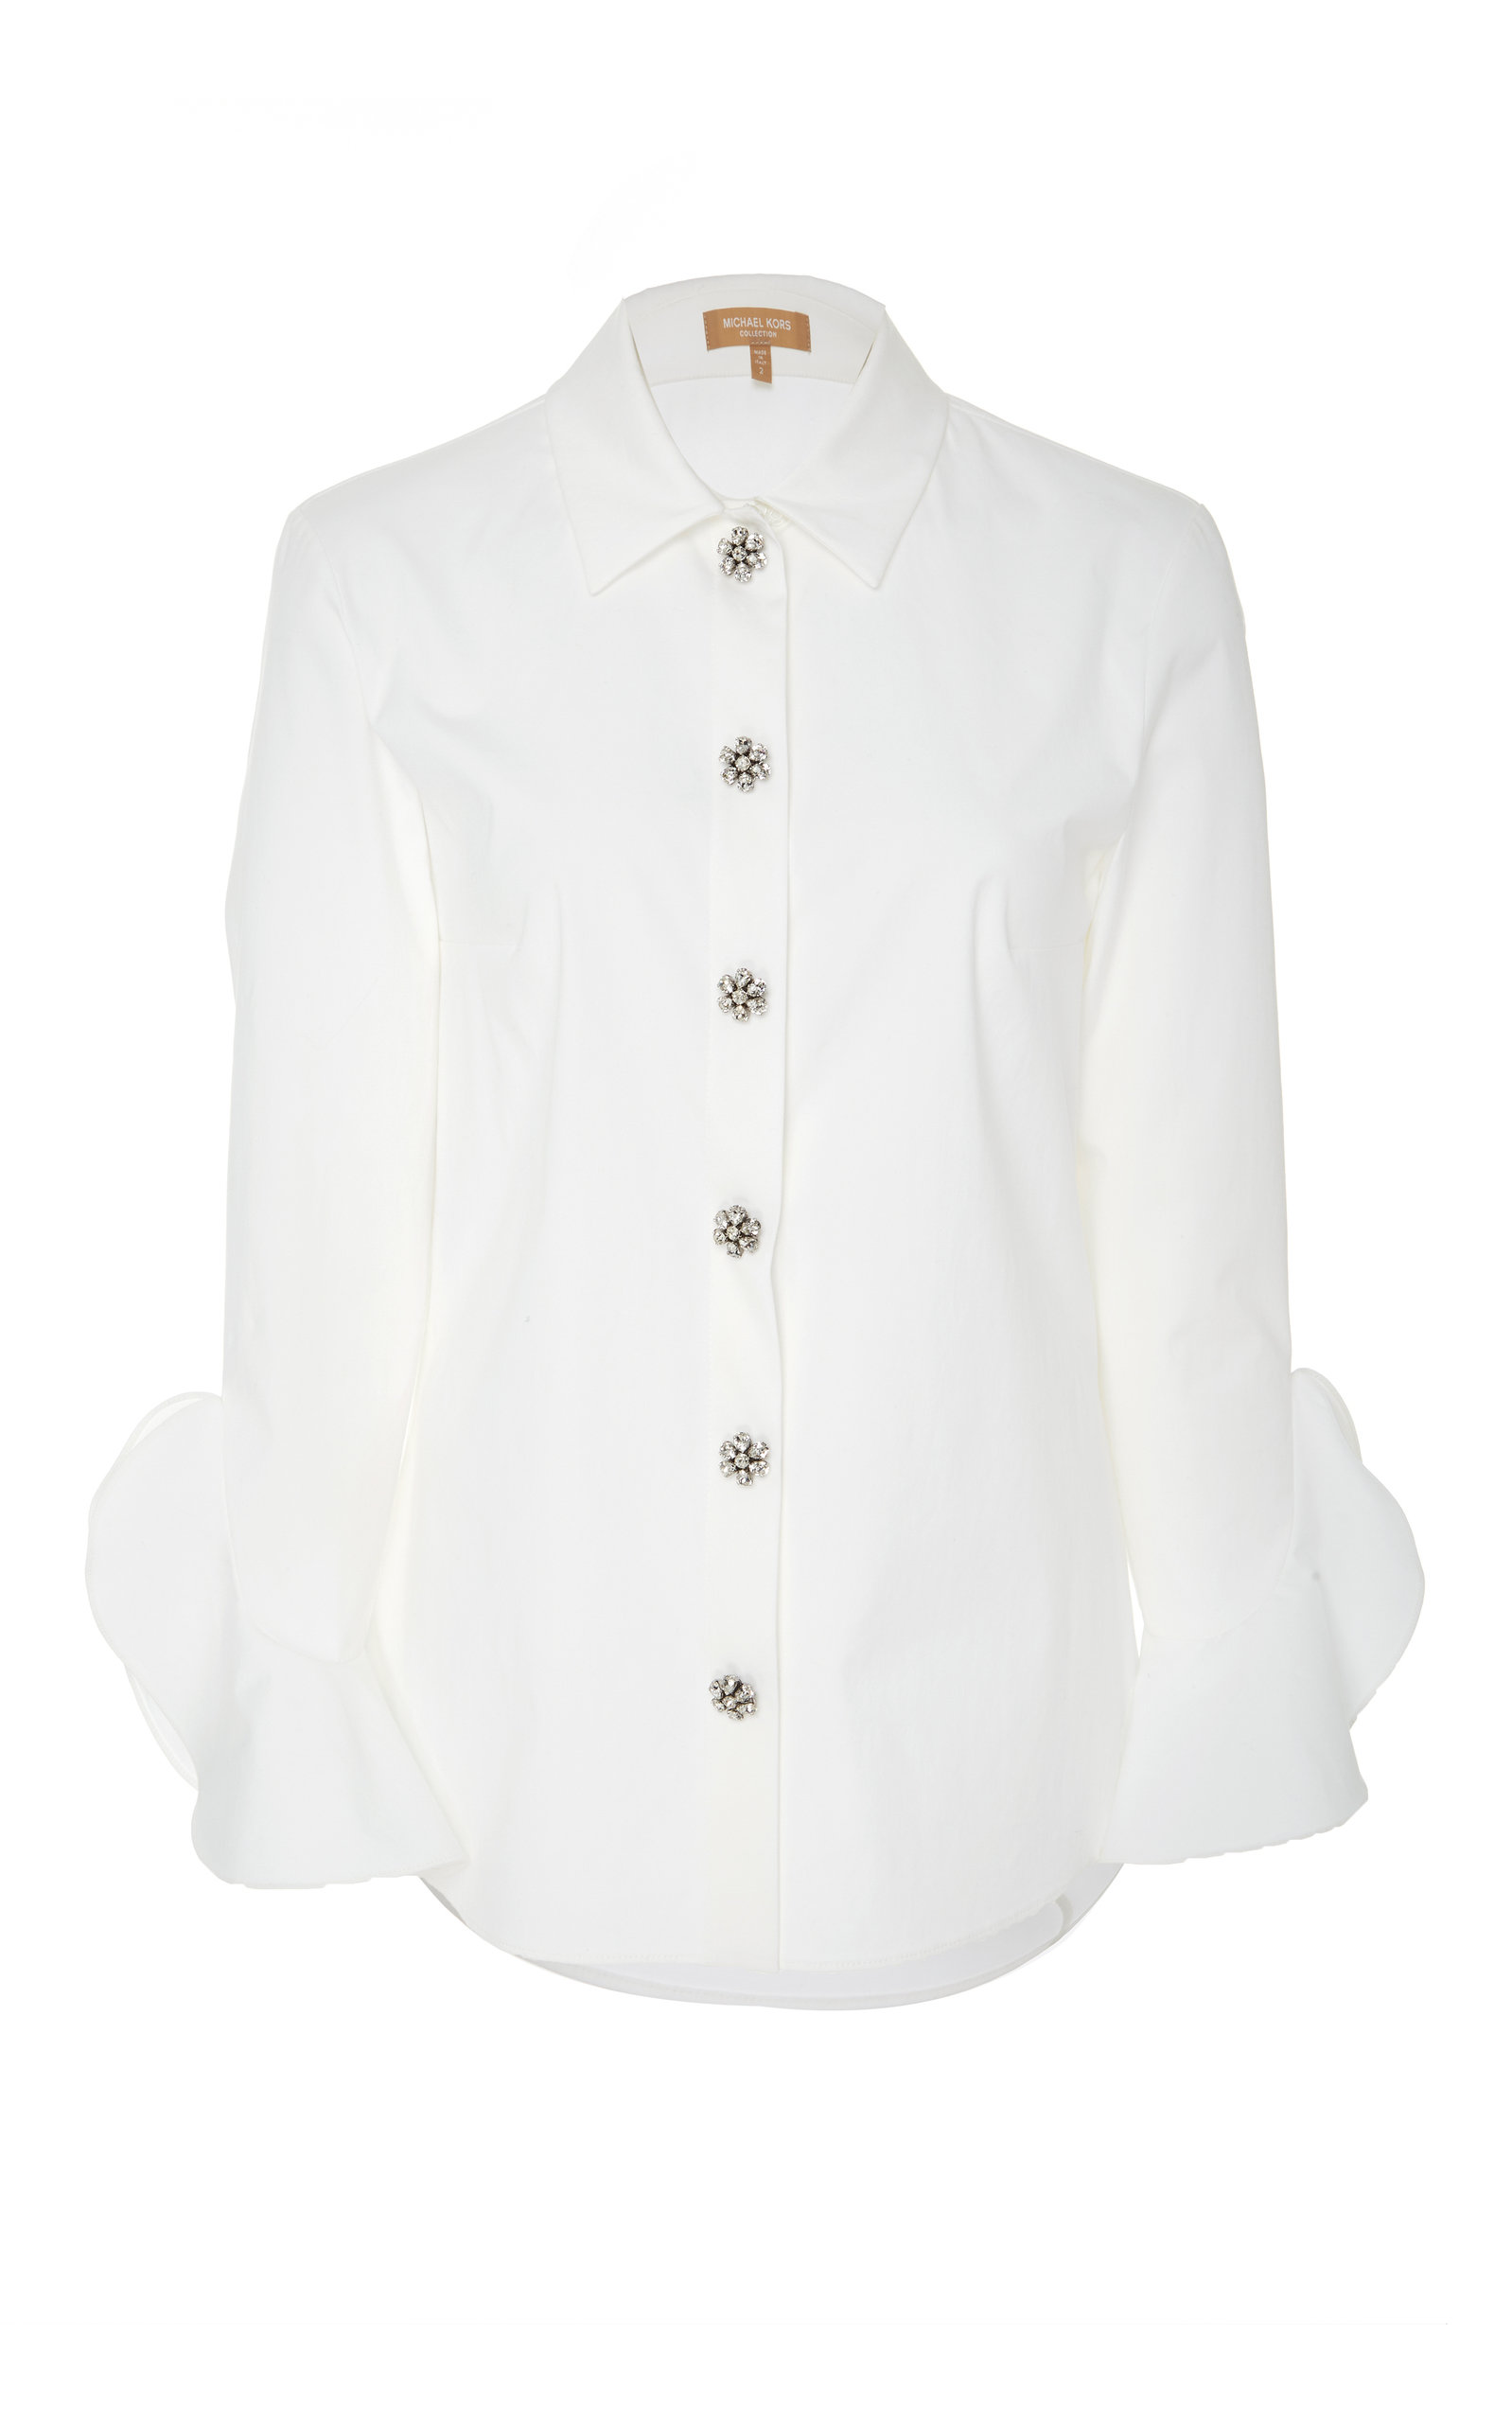 MICHAEL KORS Jewel-Buttons Long-Sleeve Classic Stretch-Poplin Shirt in White